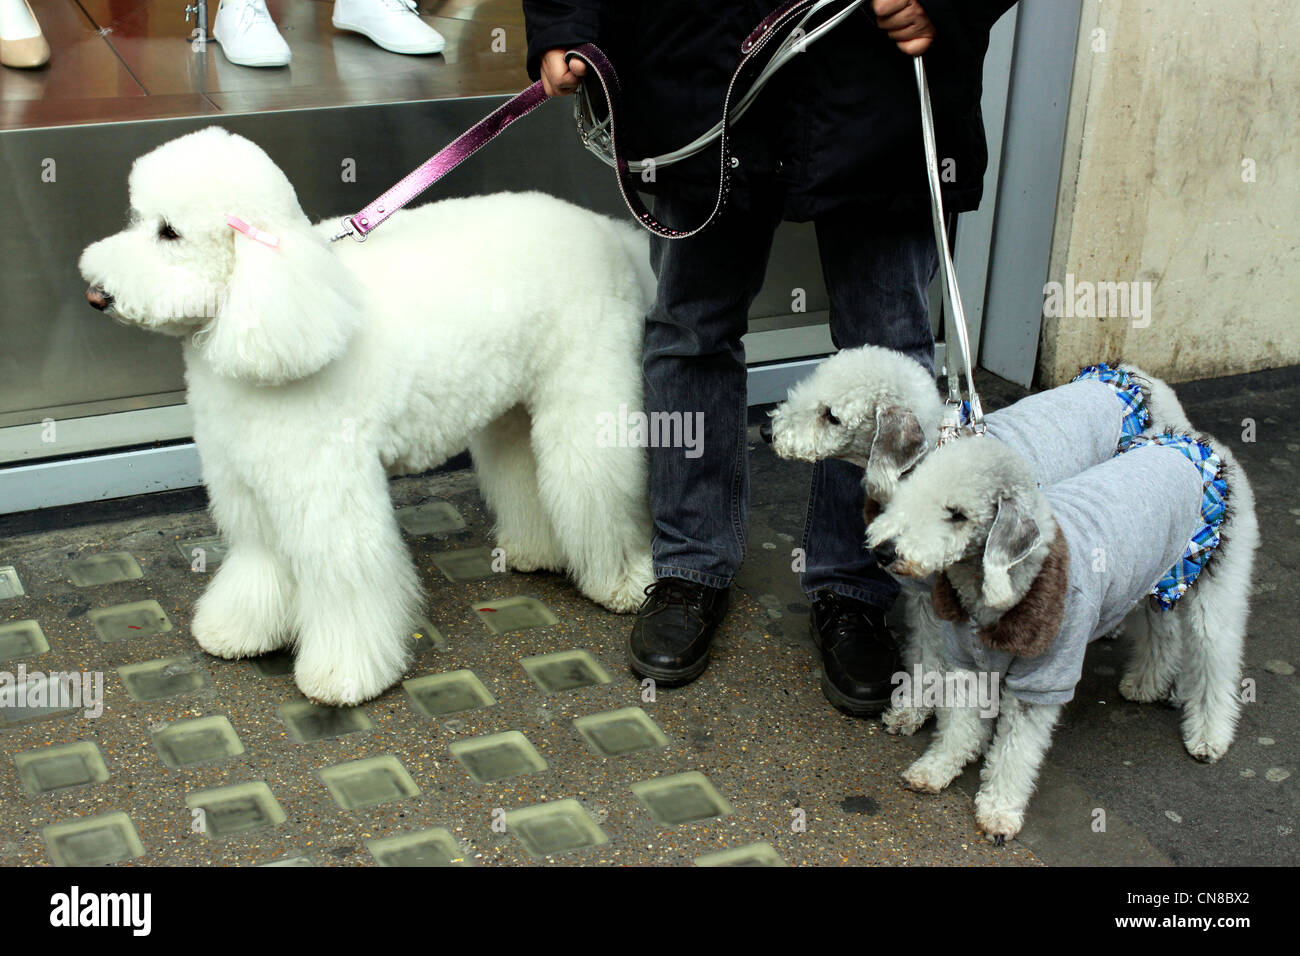 Pet poodles being taken for for a walk in London - Stock Image